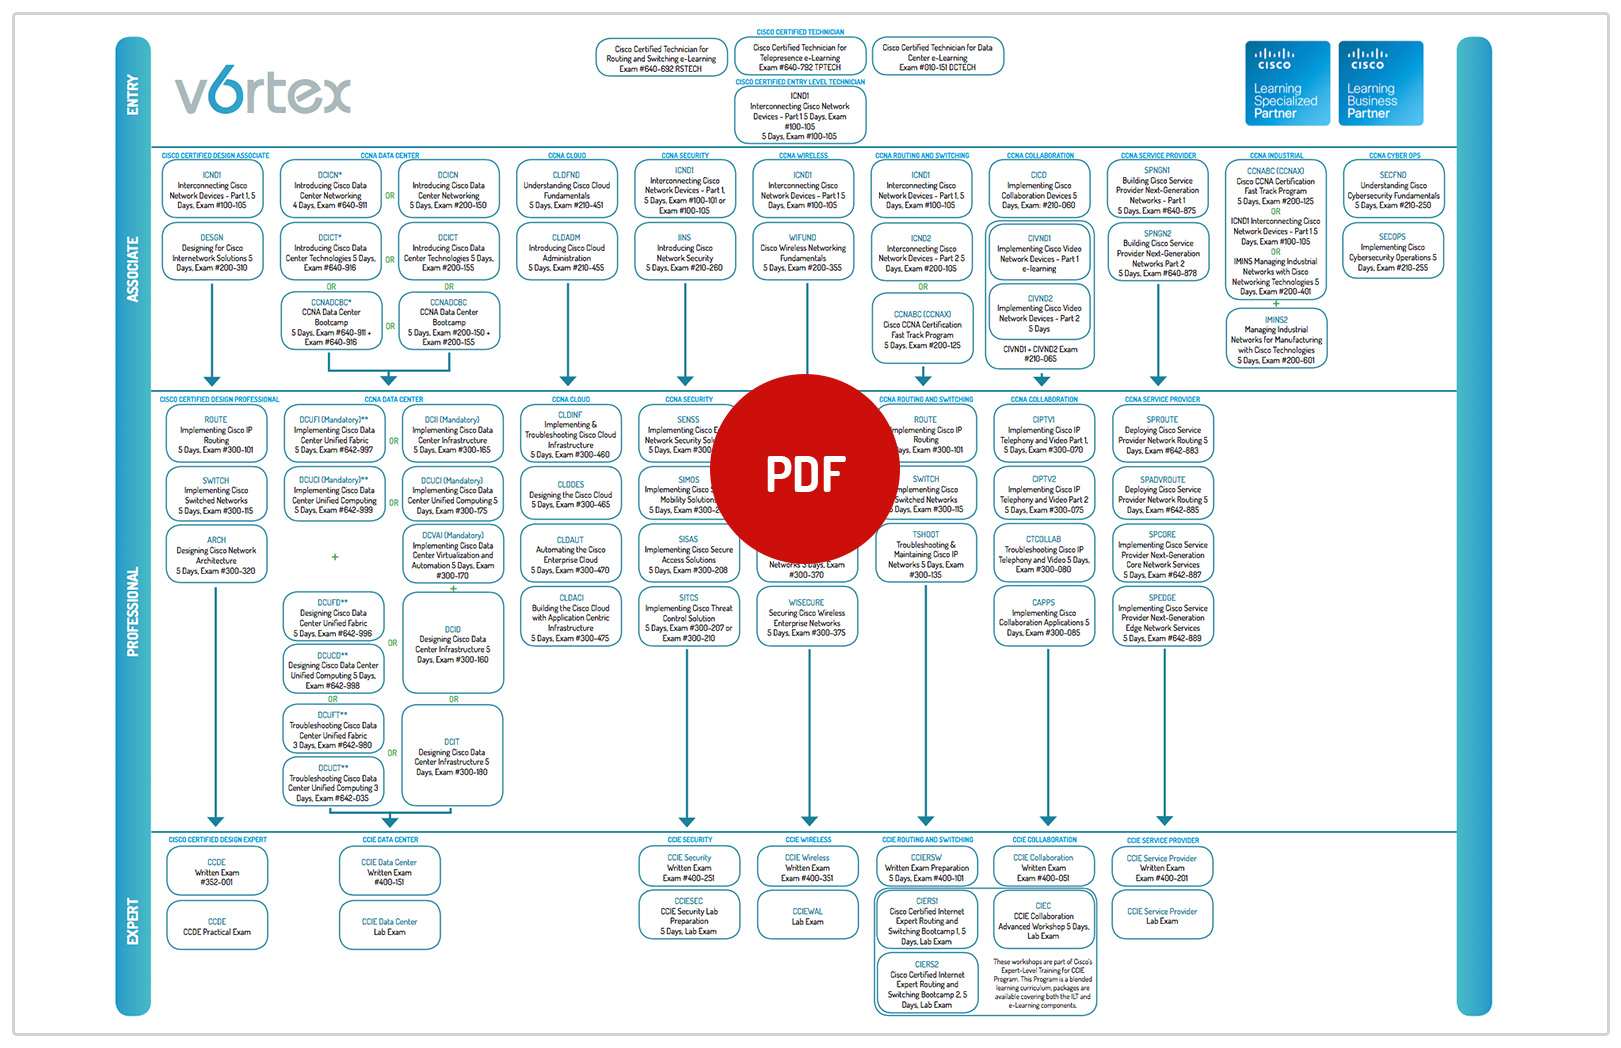 cisco-training-pdf-image - Vortex 6